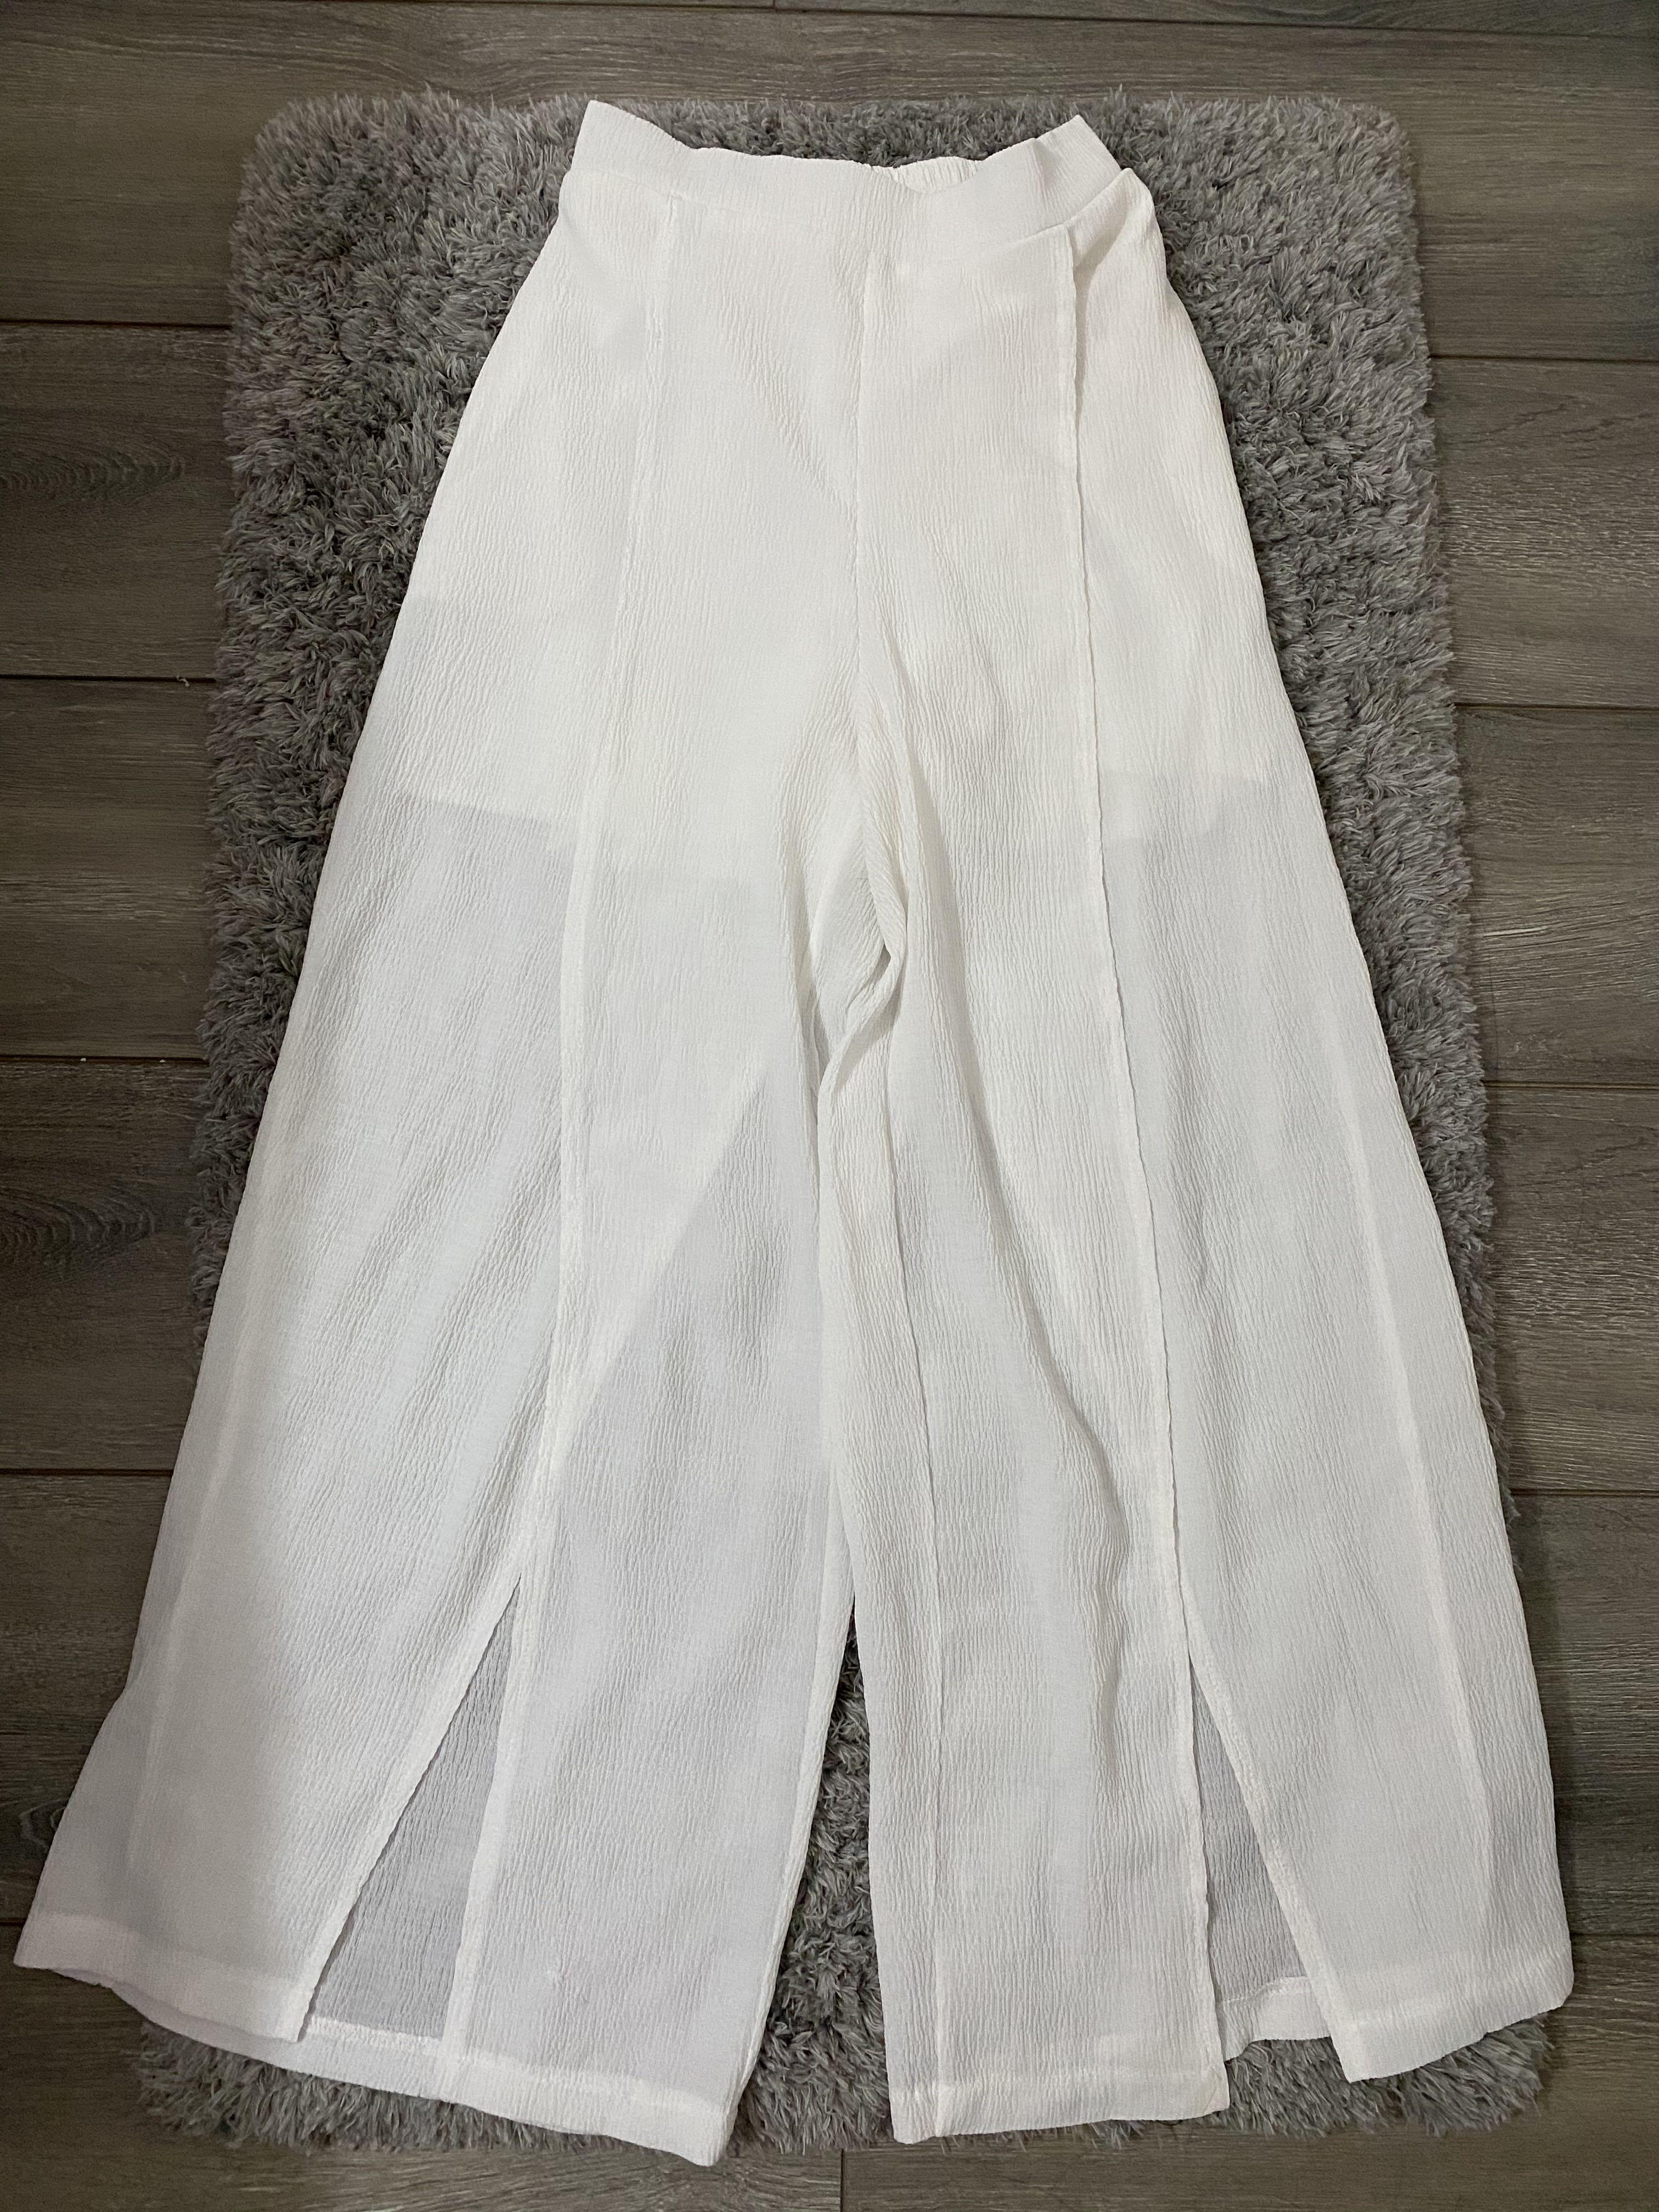 Sheer Beach cover up pants SZ XS-S